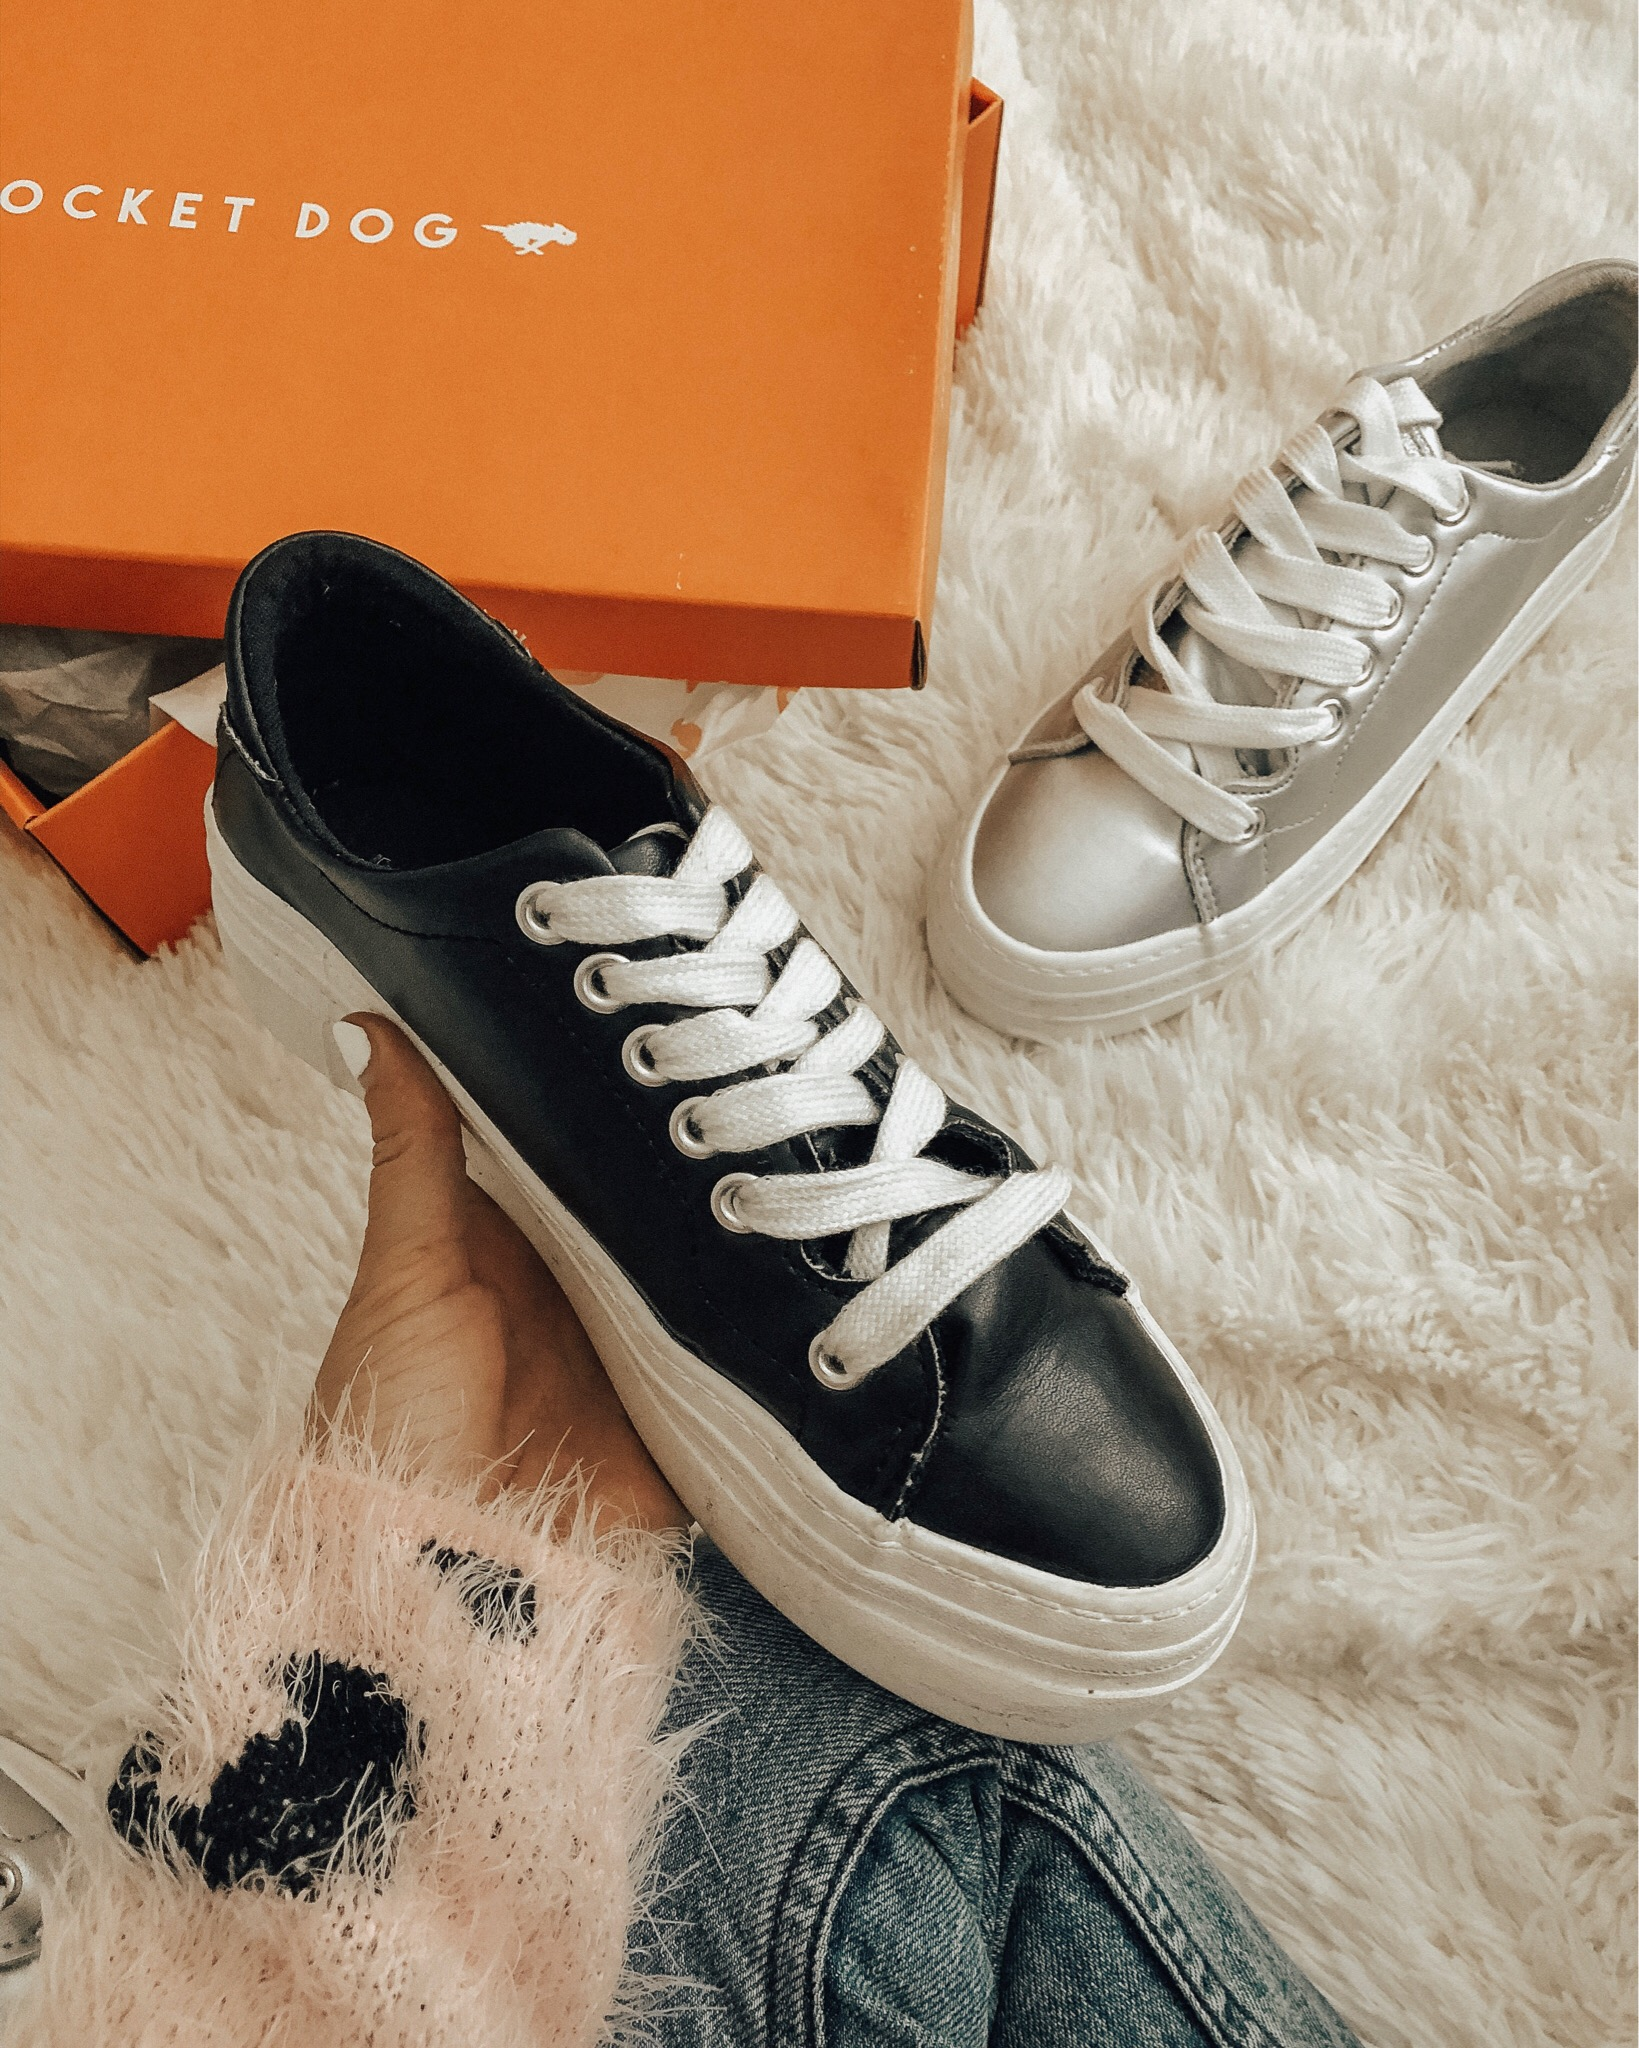 ROCKET DOG PLATFORM SNEAKERS- Jaclyn De Leon Style + metallic silver platform shoes + distressed denim + striped sweater + target style + retro style + fall outfit inspo + mom style + mommy and me style + styling sneakers + floral dress + how to style sneakers